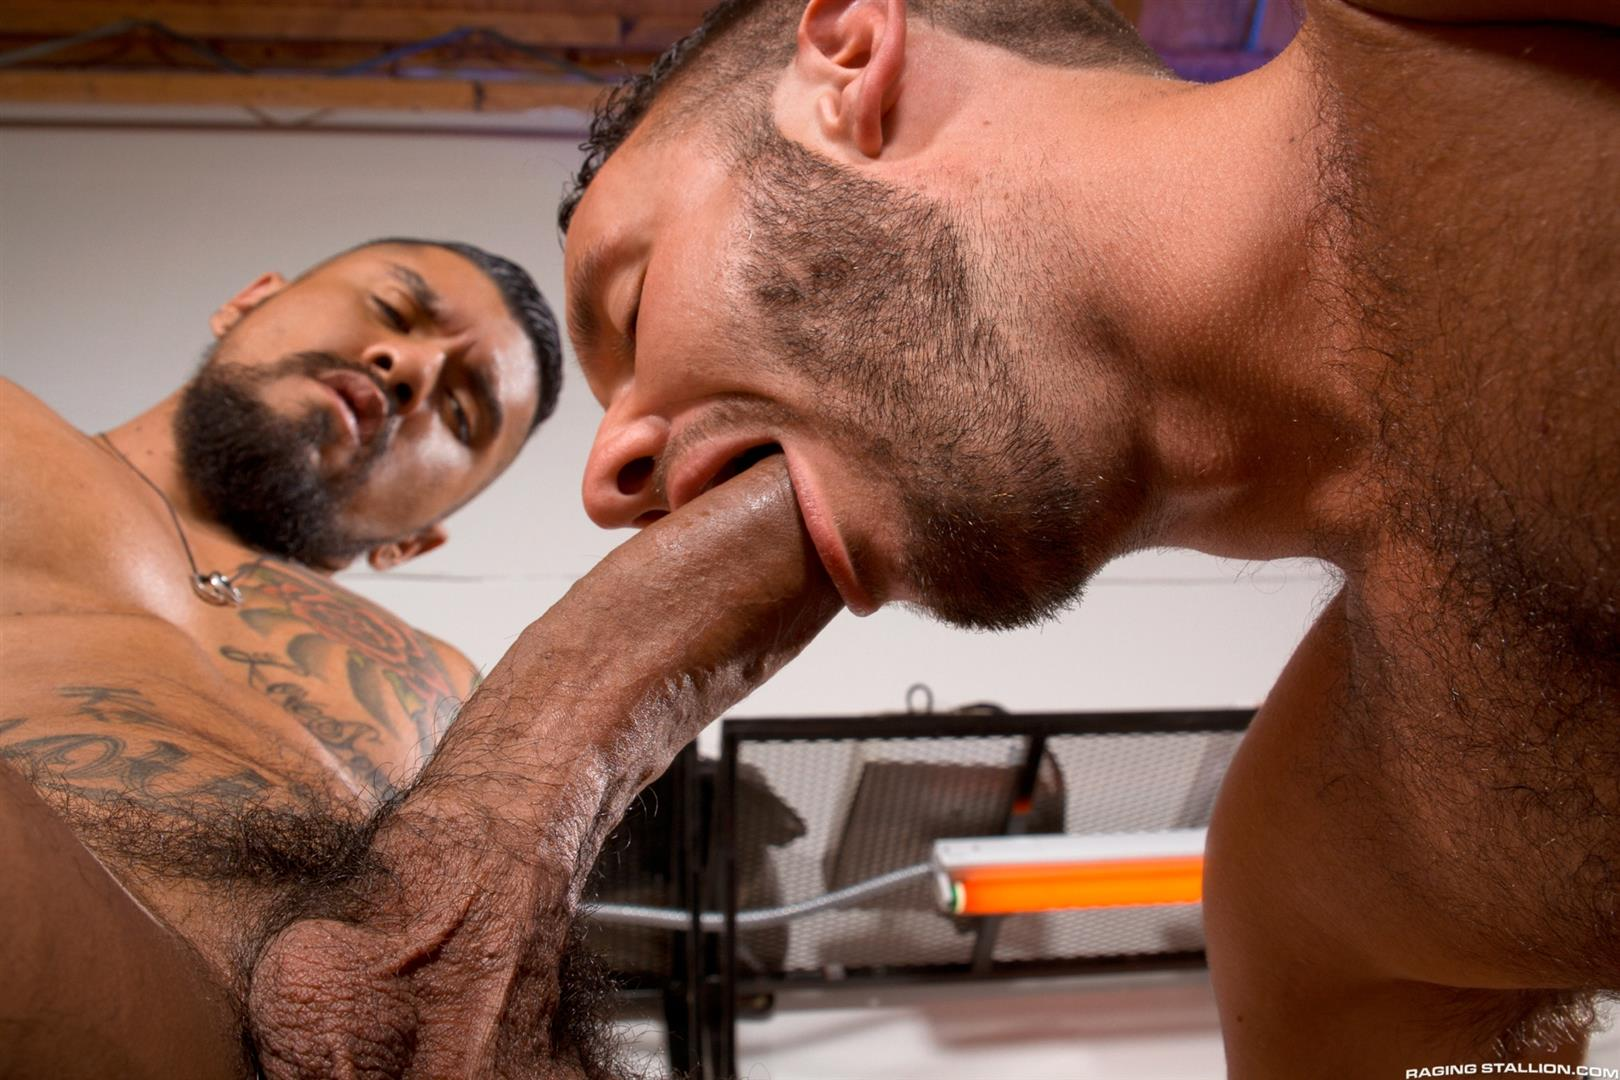 Raging-Stallion-Boomer-Banks-and-Aaron-Steel-Big-Uncut-Cocks-Fucking-Amateur-Gay-Porn-07 Boomer Banks Fucking Aaron Steel With His Huge Uncut Cock